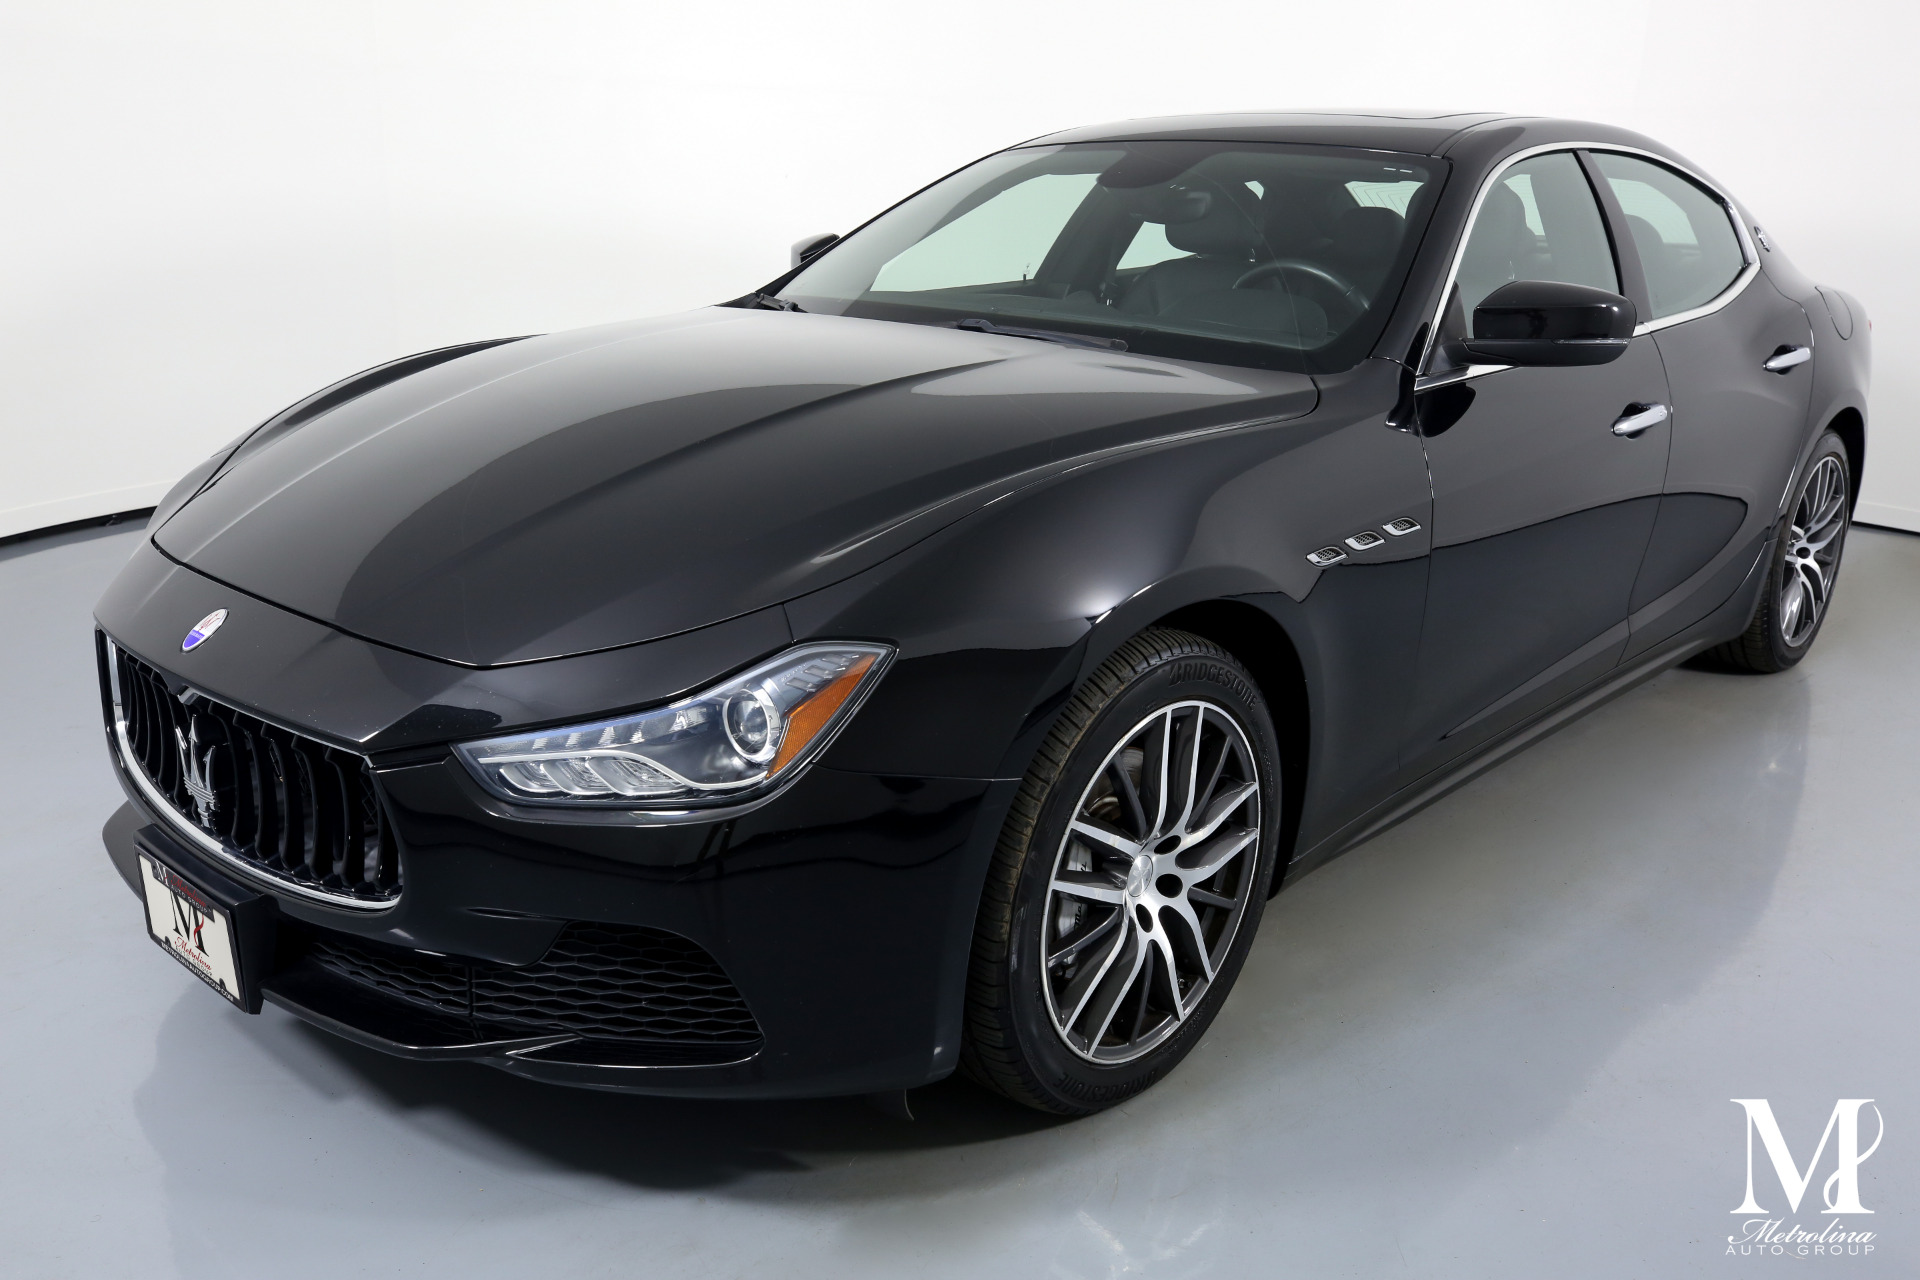 Used 2017 Maserati Ghibli Base 4dr Sedan for sale Sold at Metrolina Auto Group in Charlotte NC 28217 - 4